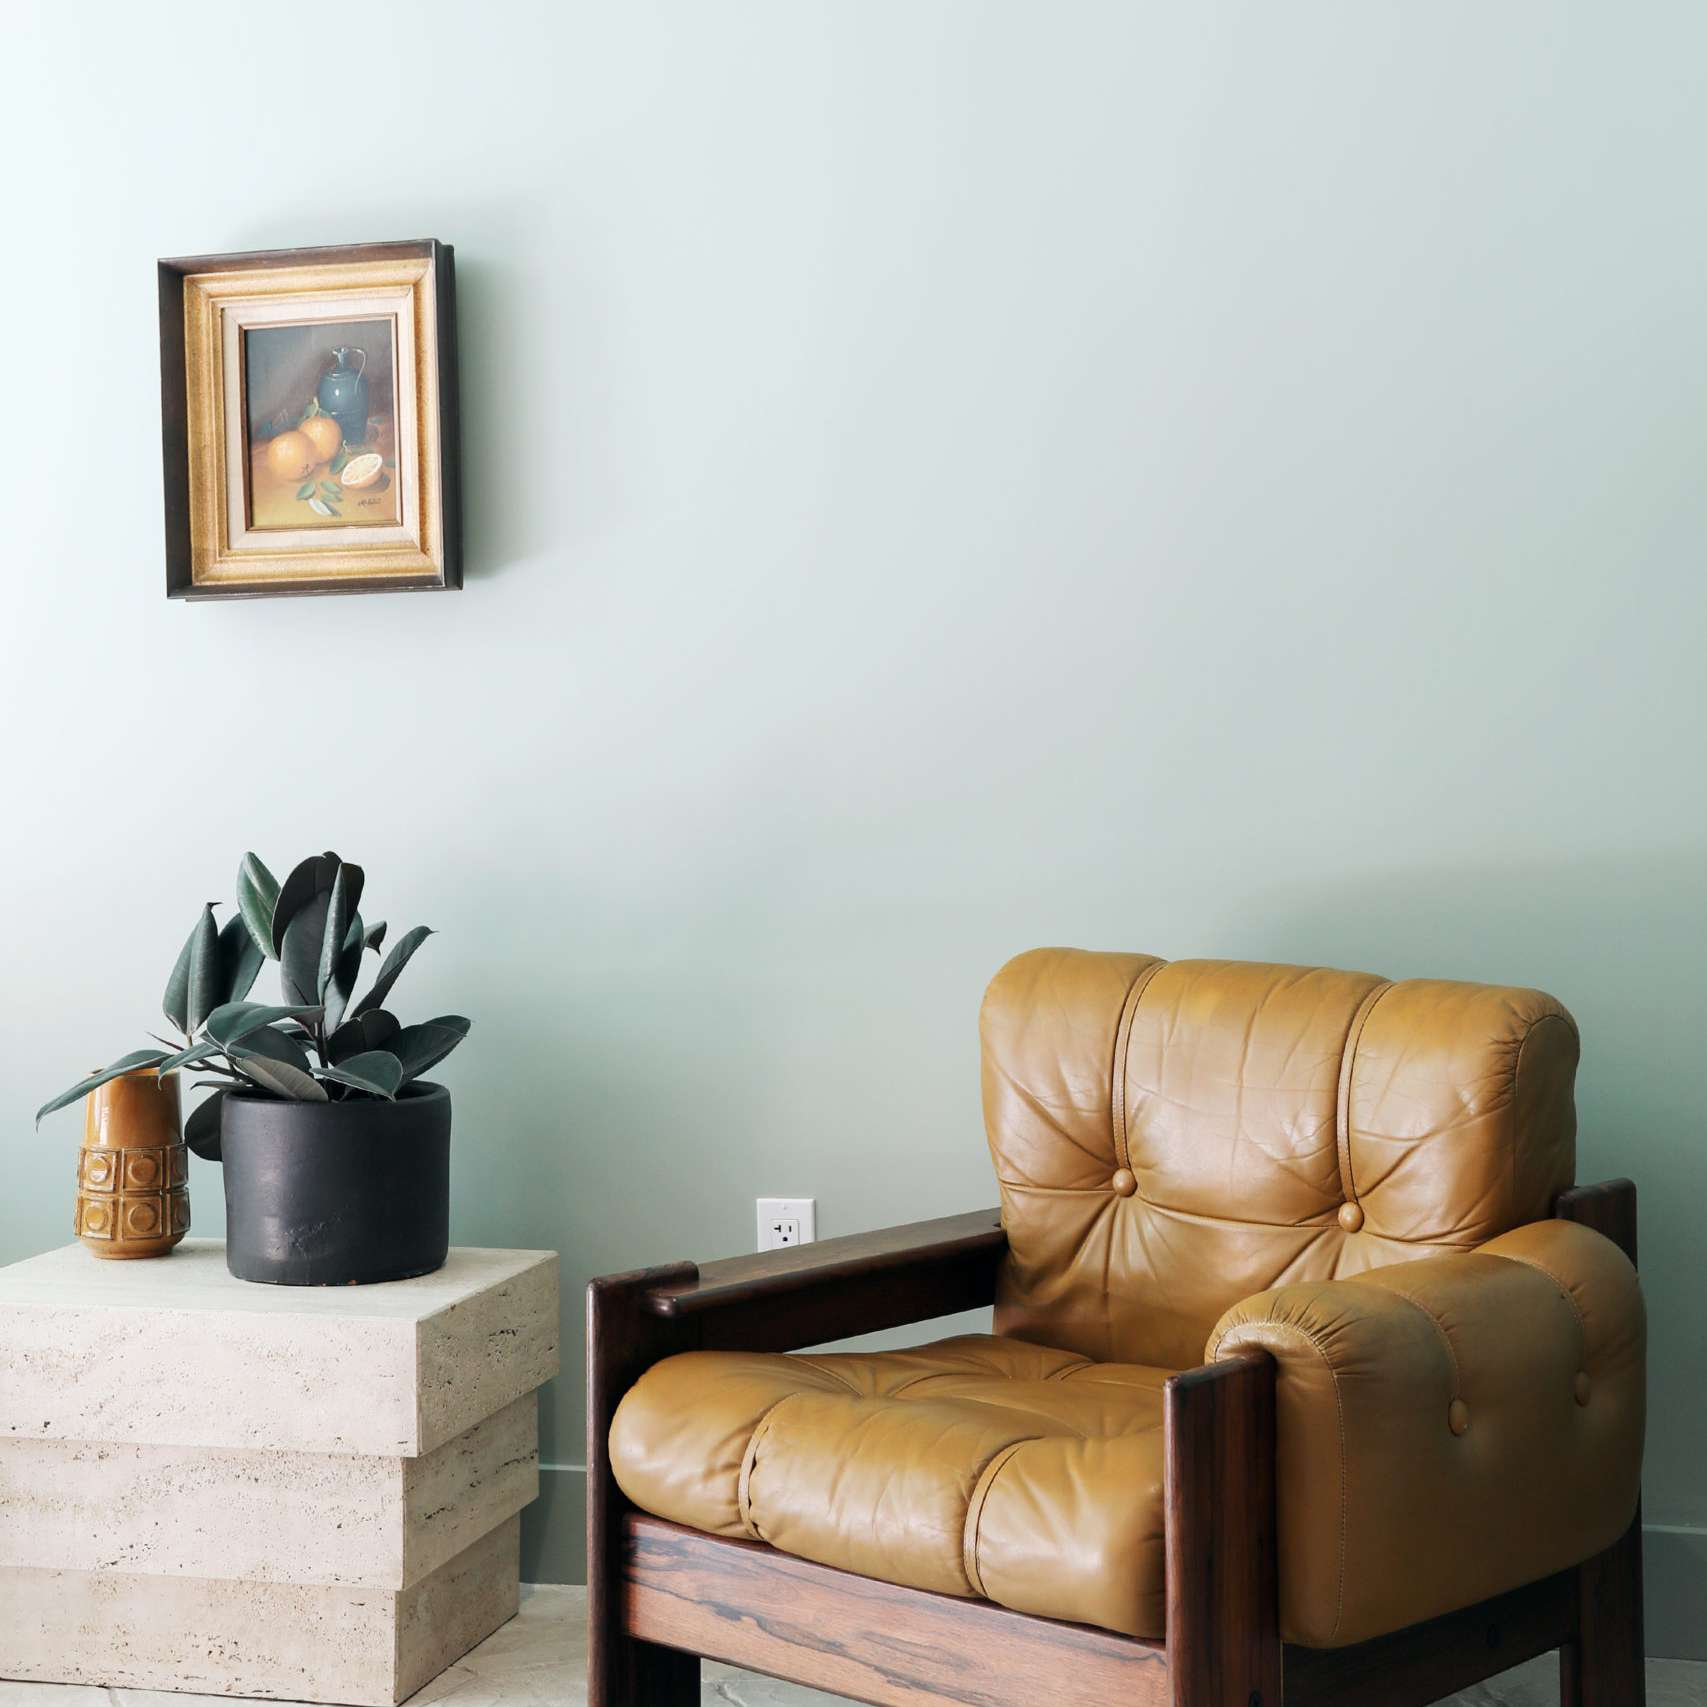 A midcentury modern leather lounger with a concrete side table, potted plant, and ceramic vase.